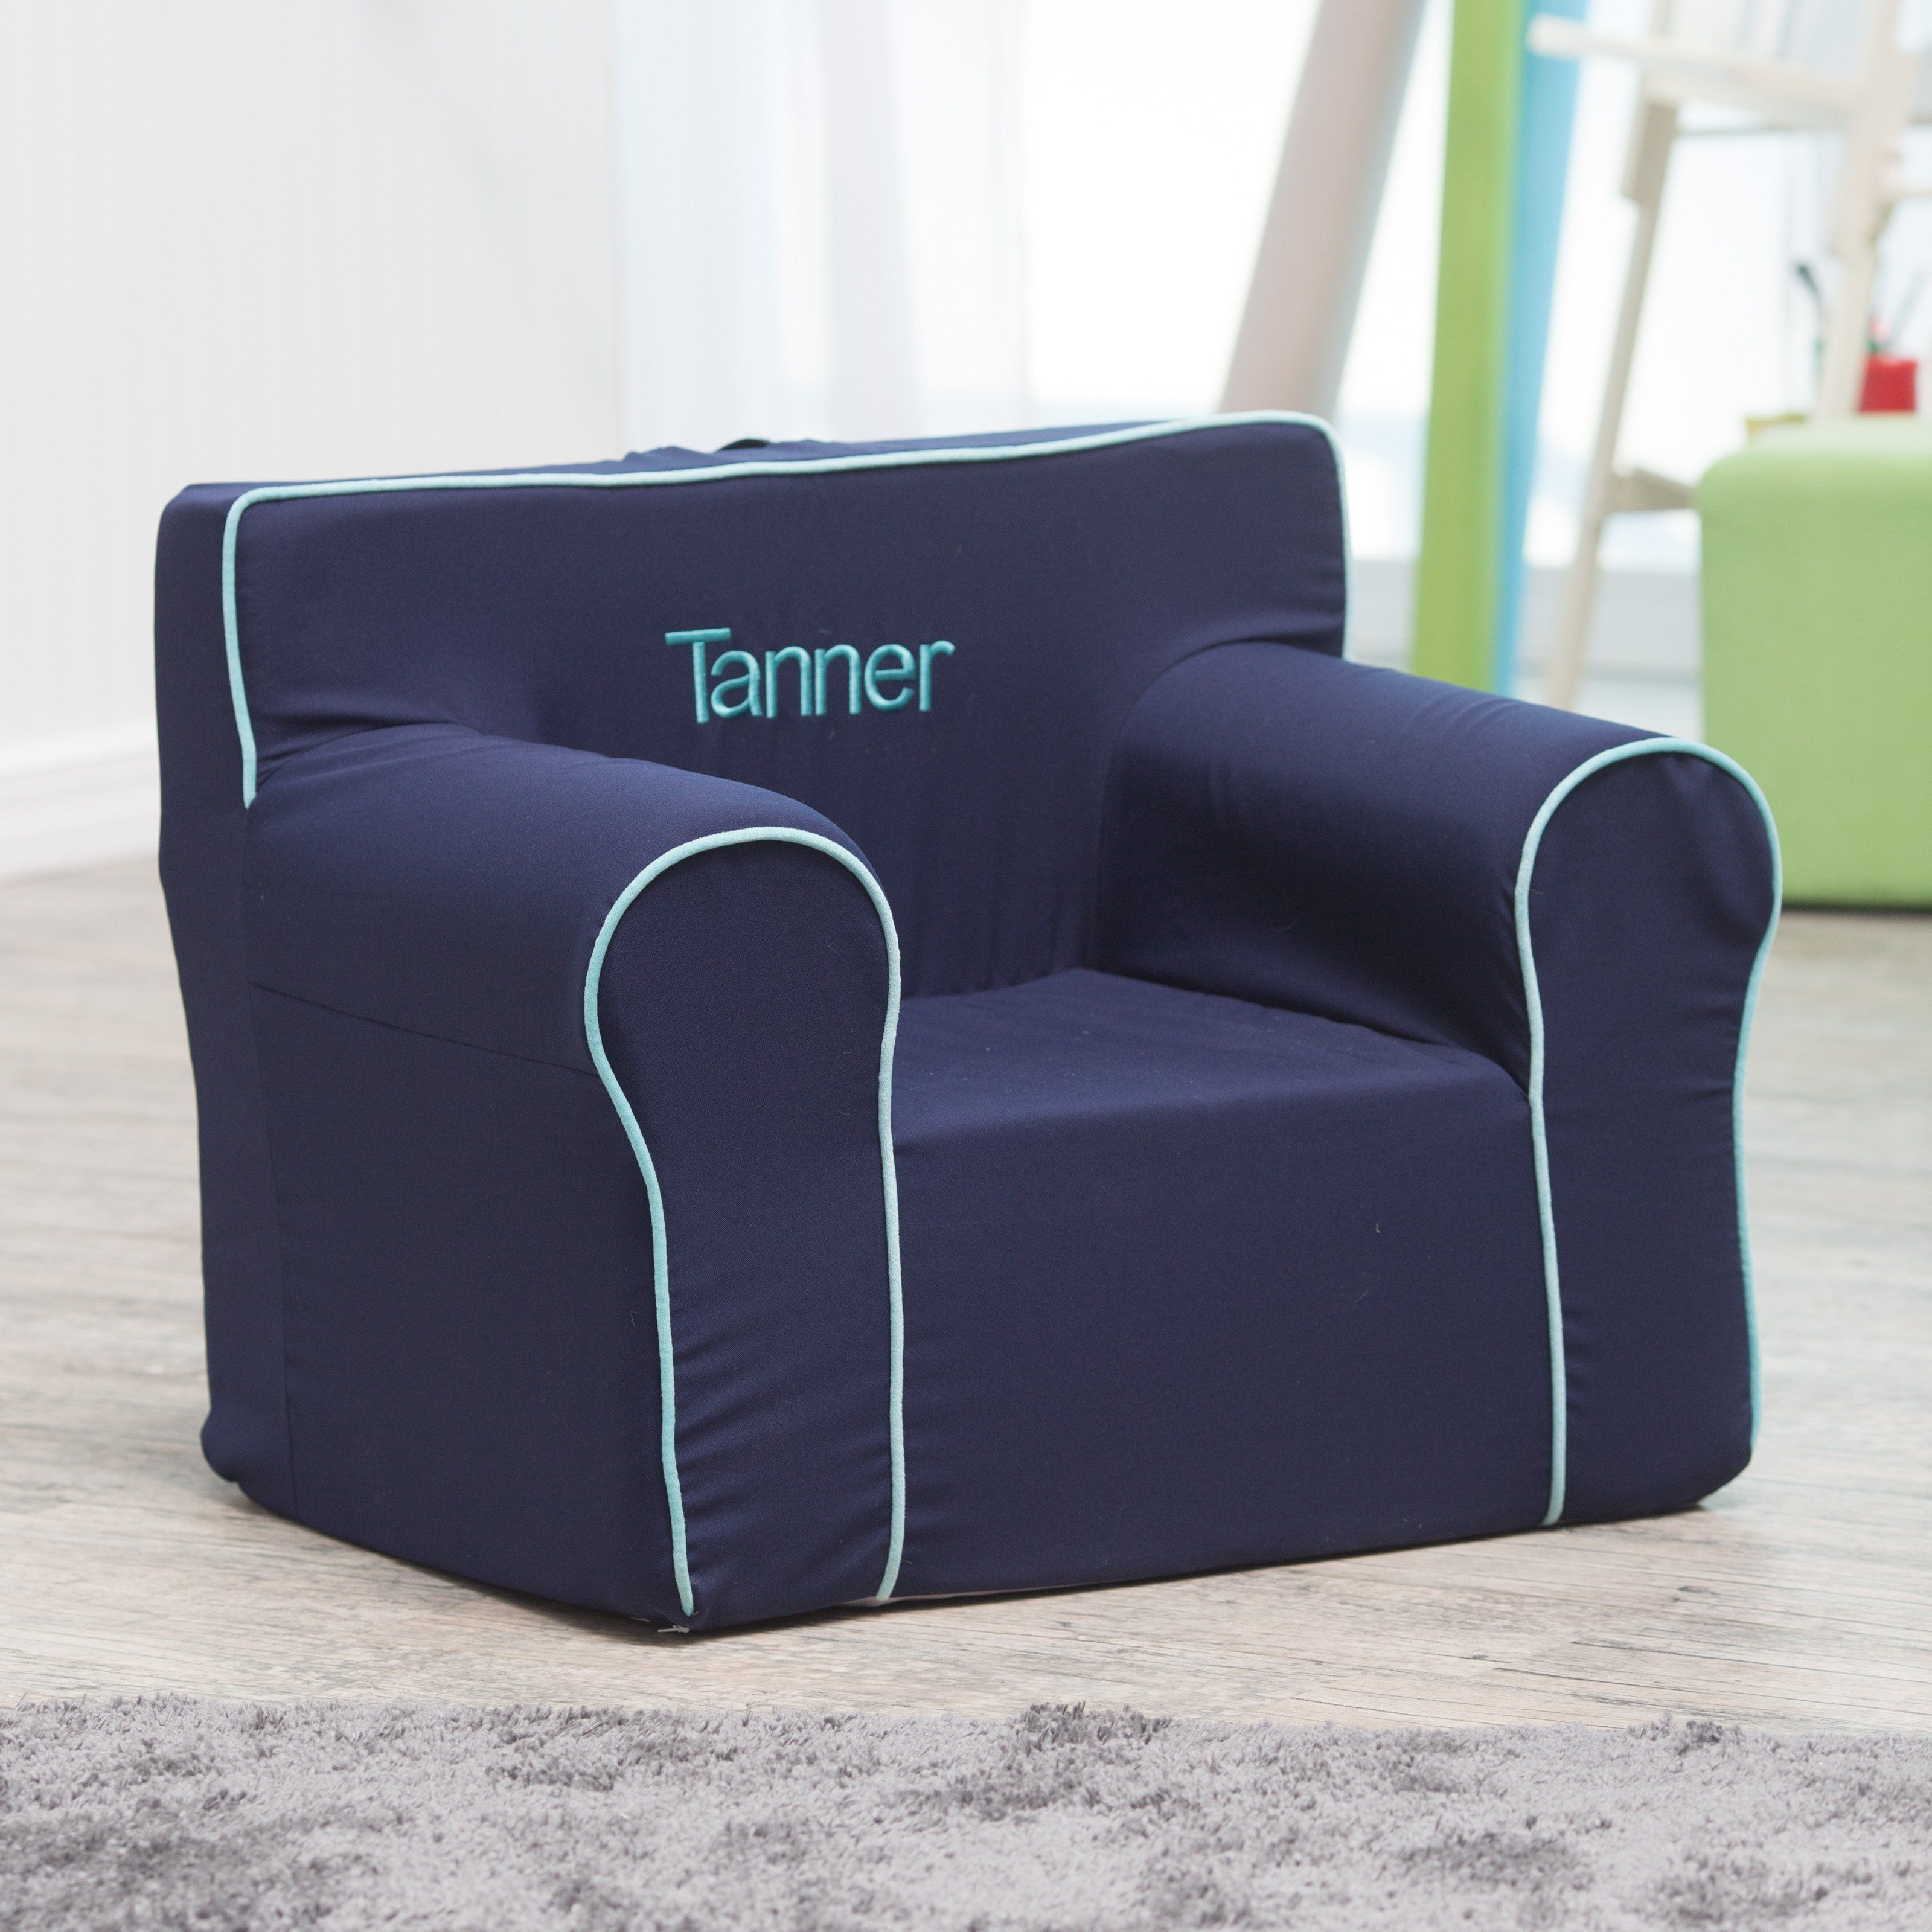 Here And There Personalized Kids Chair Navy Canvas With Teal Piping Www Hayneedle Com Personalized Kids Chair Kids Chairs Personalized Chairs